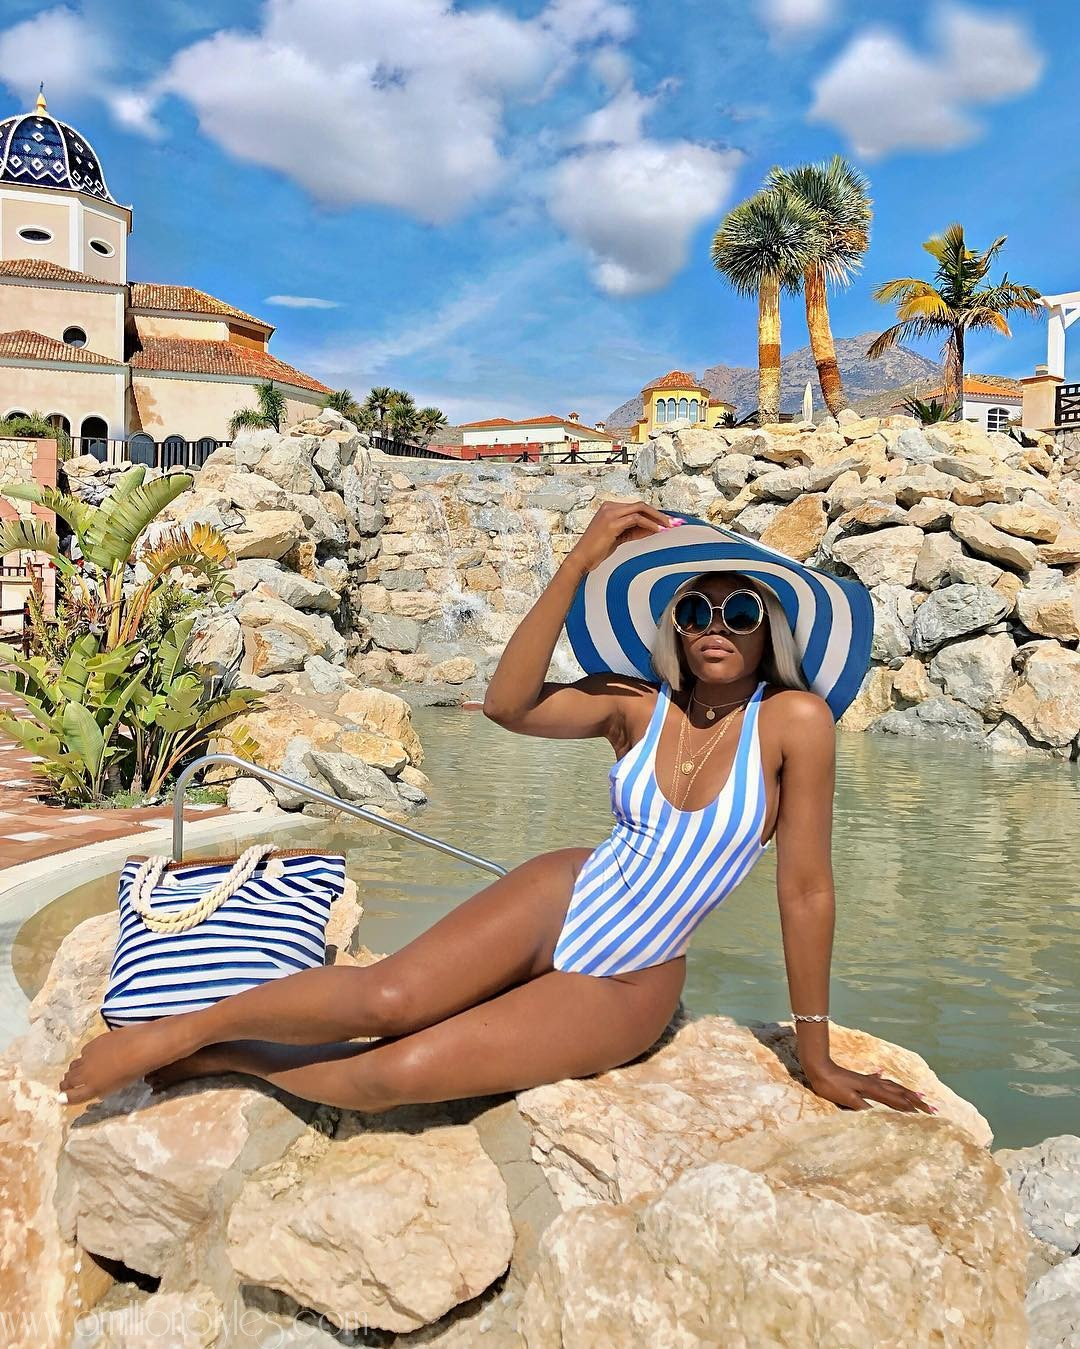 Serving Summer Vibes With 8 Fabulous Swimsuits